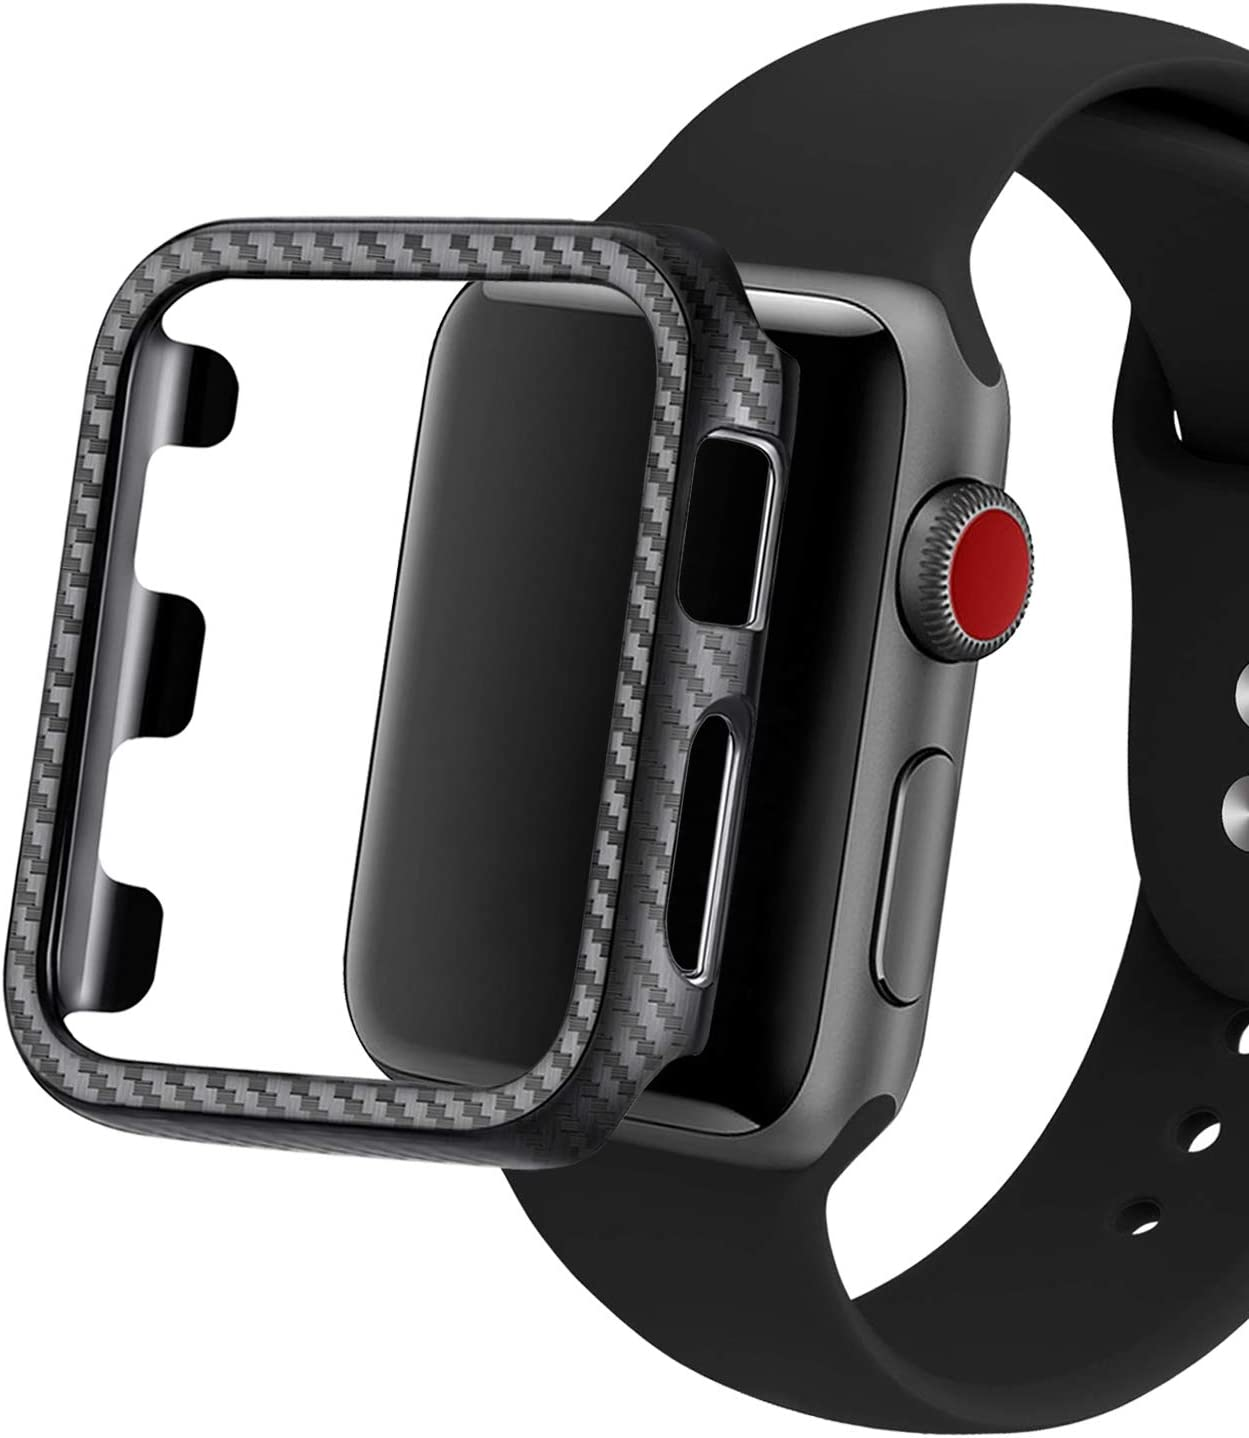 Carbon Fiber Texture Protective Cover for Apple Watch 42mm ,Shockproof Hard iWatch Case for Series 3/2/1 (Black, 42mm)